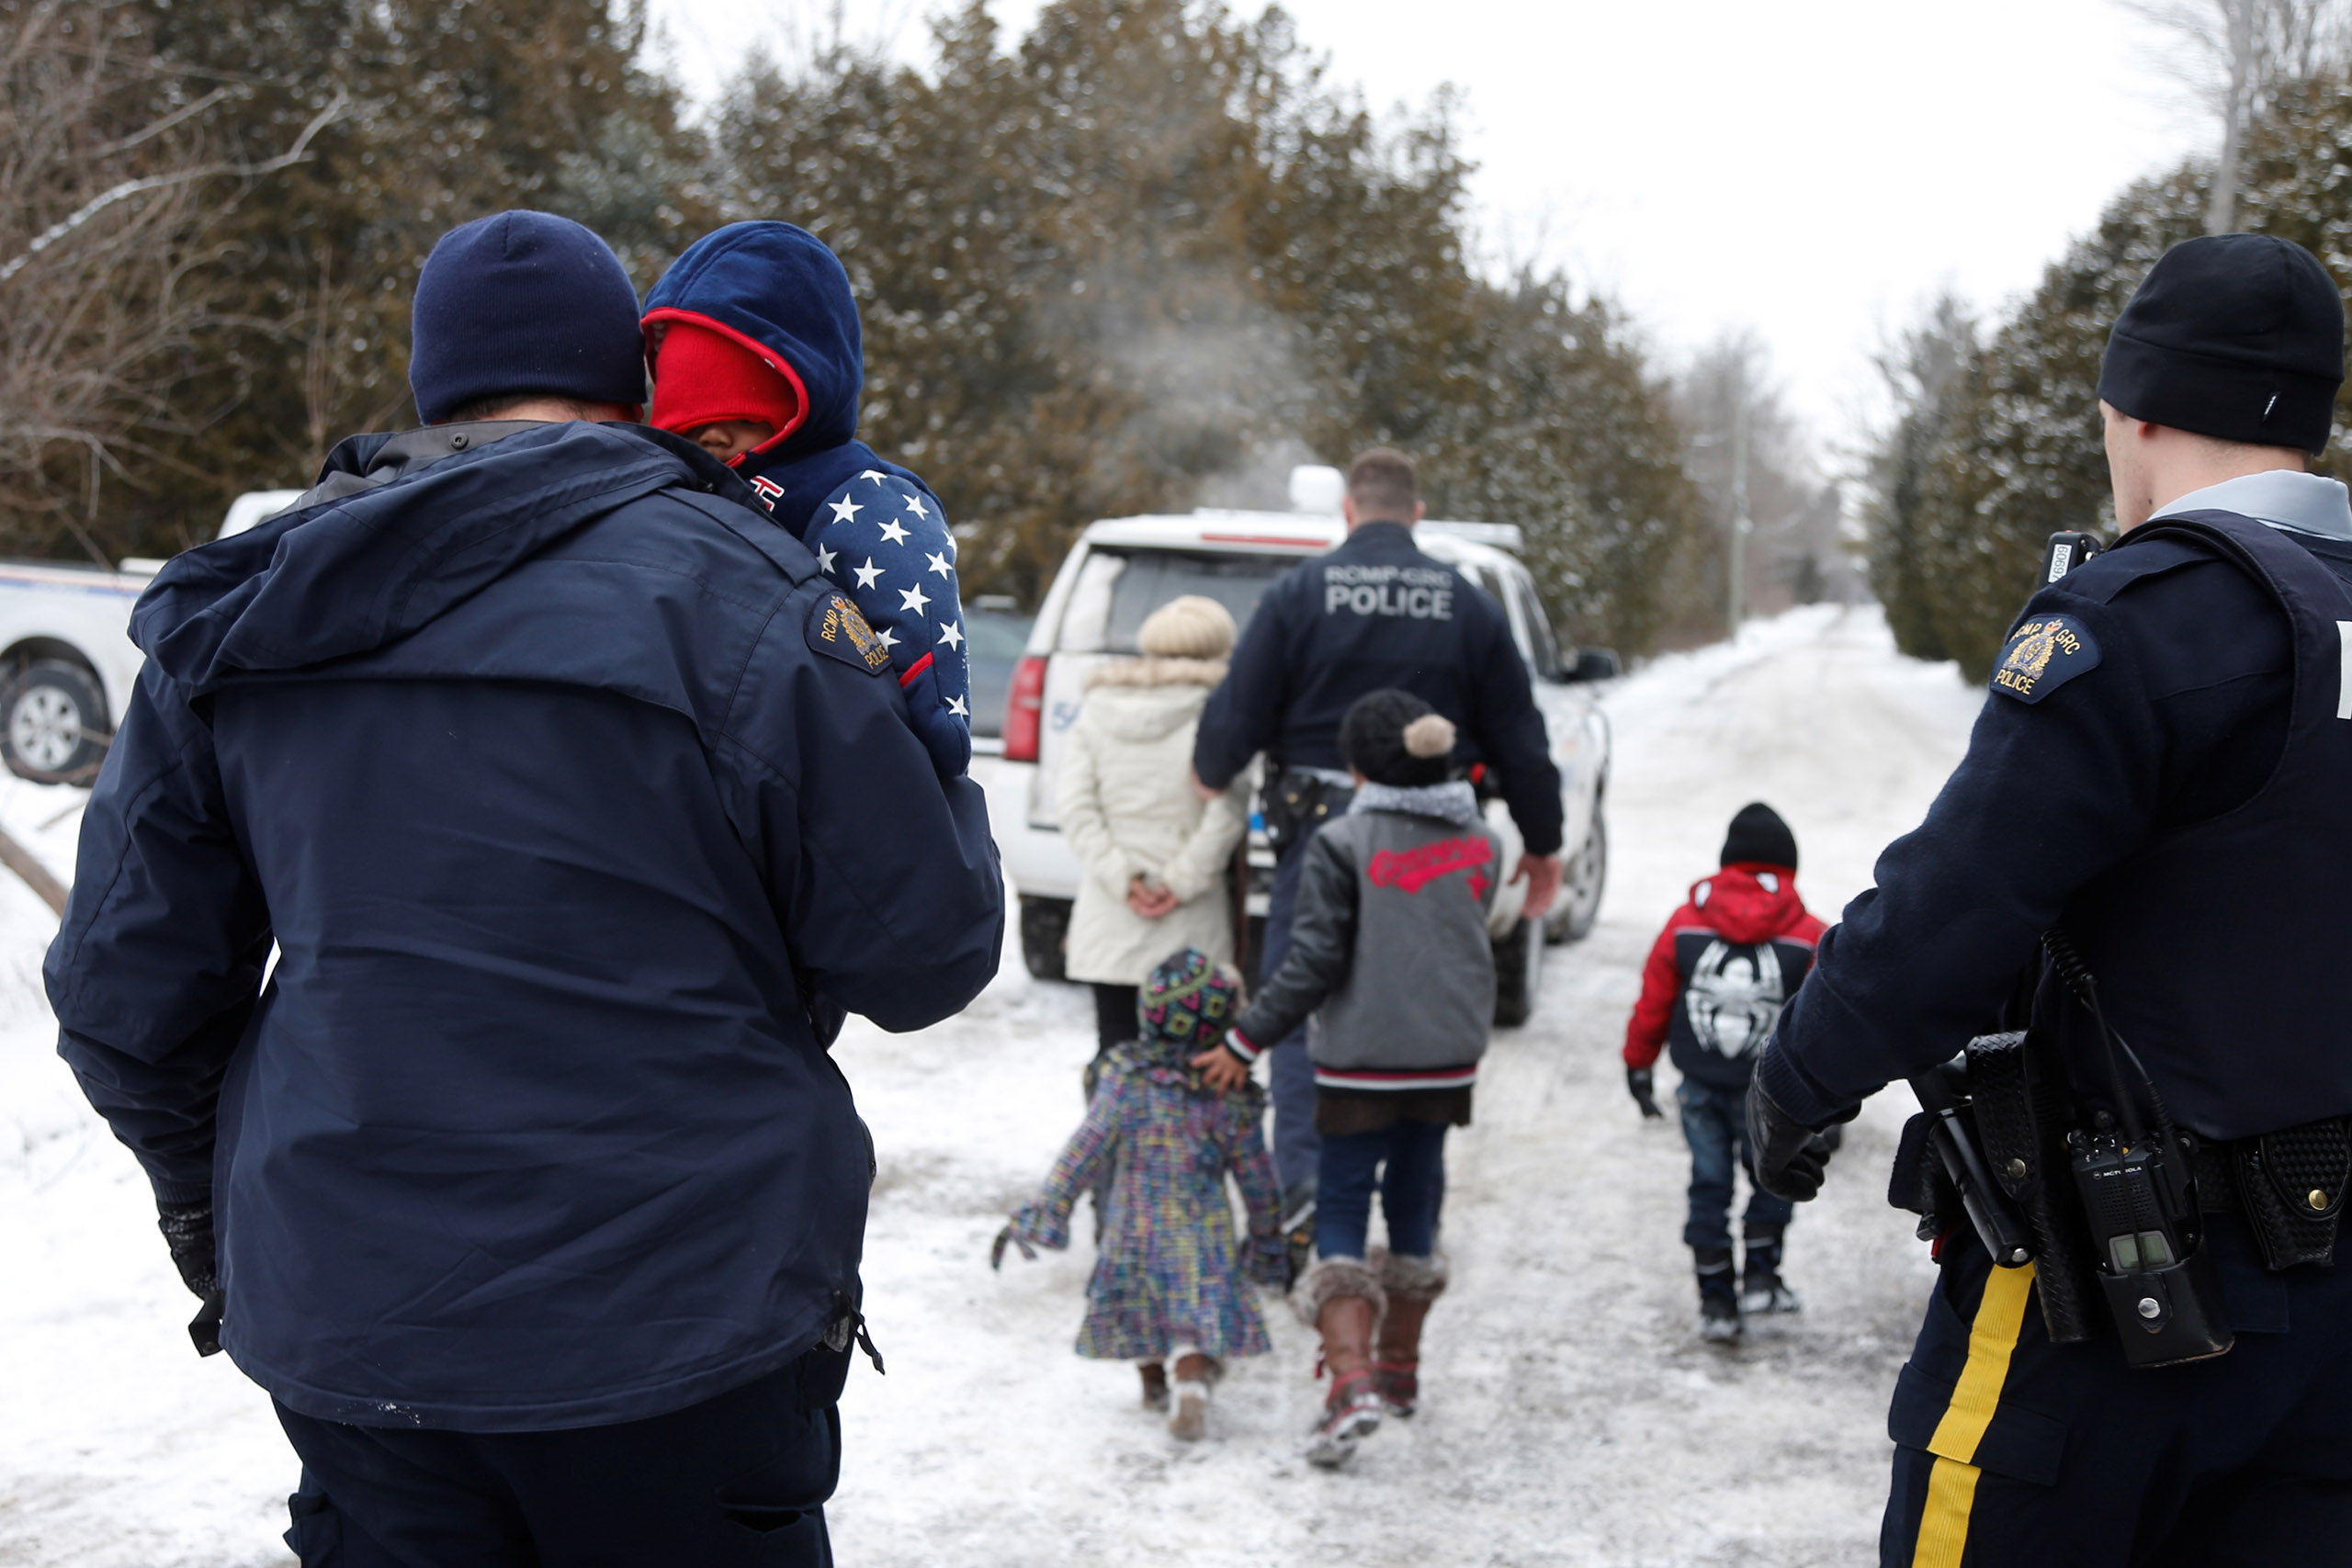 A woman who told police that she and her family were from Sudan is taken into custody by Royal Canadian Mounted Police (RCMP) officers after arriving by taxi and walking across the U.S.-Canada border into Hemmingford, Quebec, on Feb. 12, 2017.